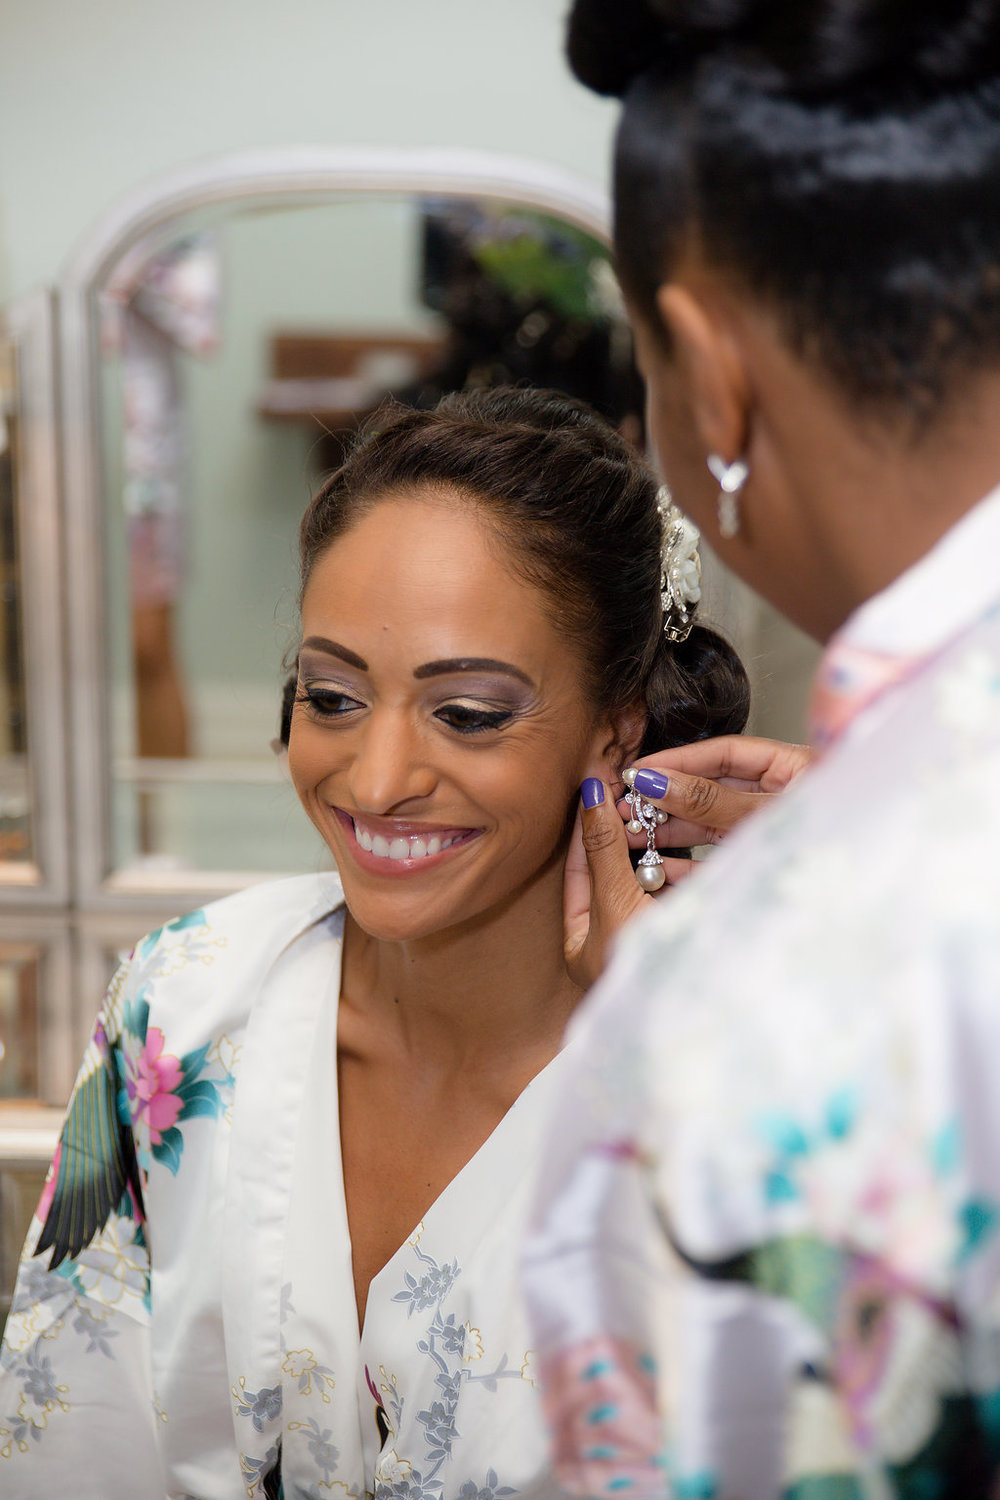 Megan Dickerson Wedding Photography North Carolina bridesmaid helping bride get ready